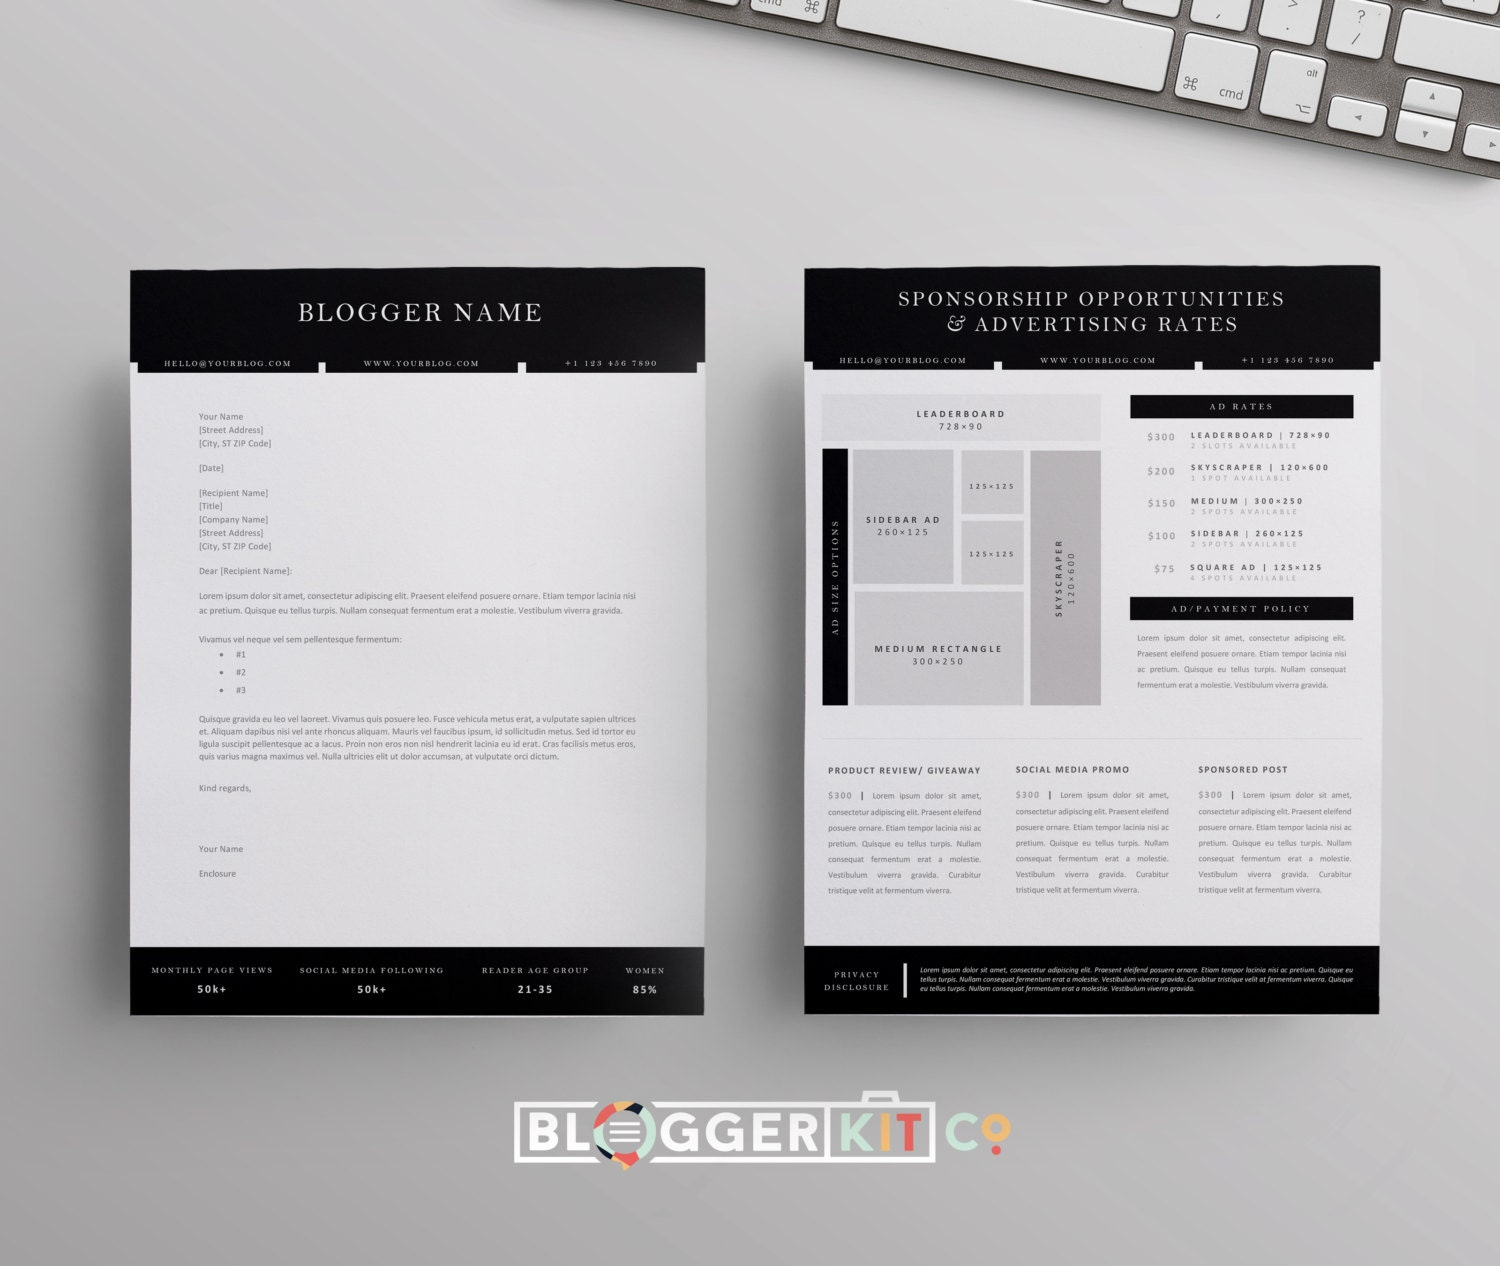 Blog Sponsorship Proposal Letter Template Ad Rate Sheet